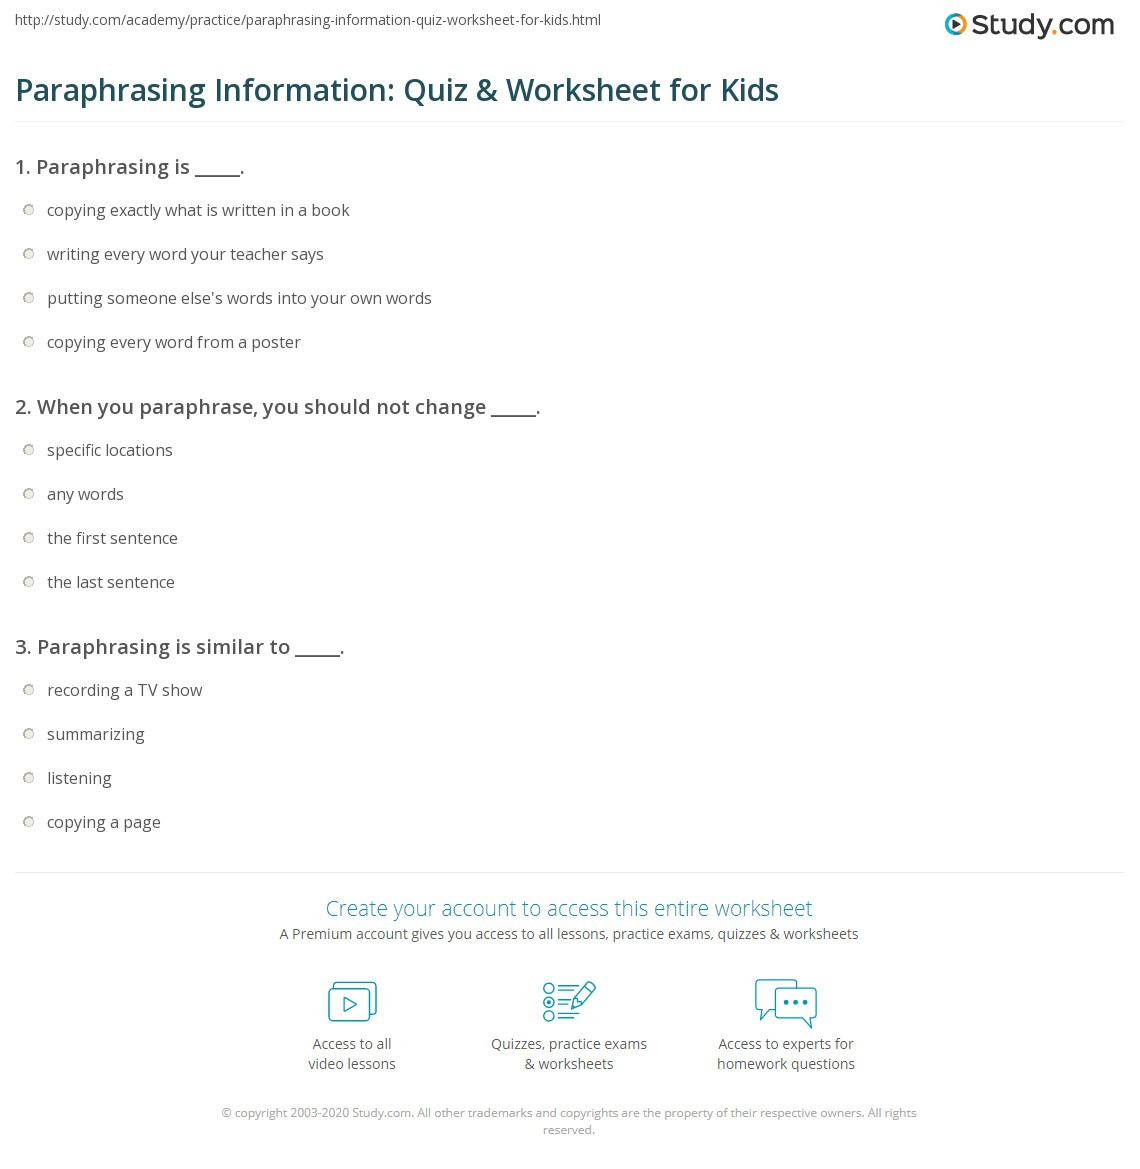 Paraphrase Worksheet Middle School Paraphrasing Information Quiz & Worksheet for Kids